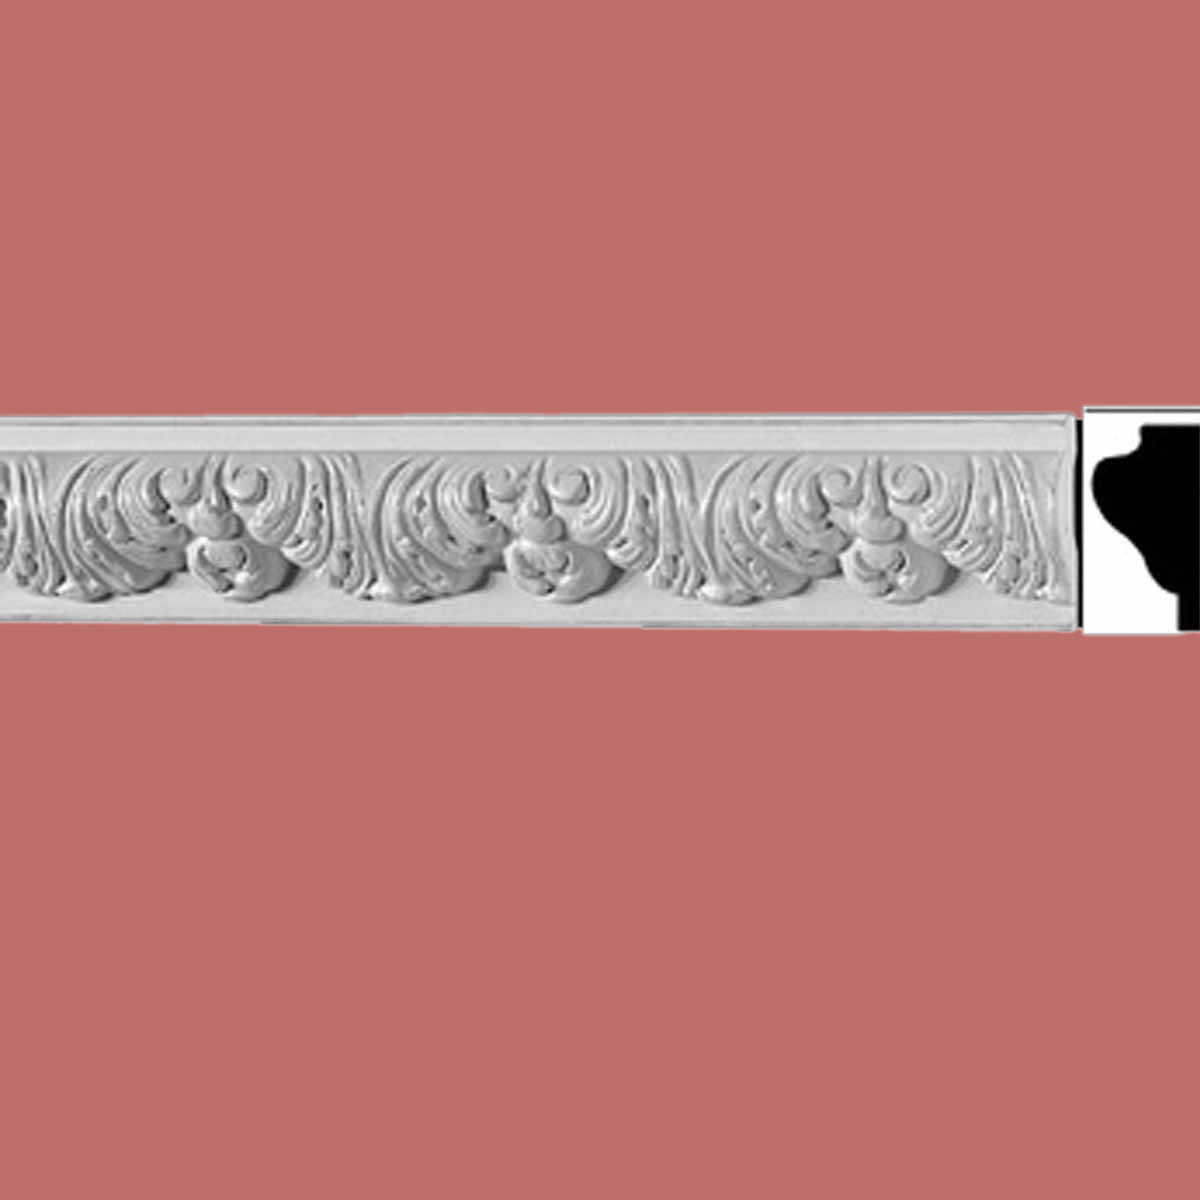 Ornate Cornice Withe Urethane 2 3/8' H Bebel | Renovator's Supply